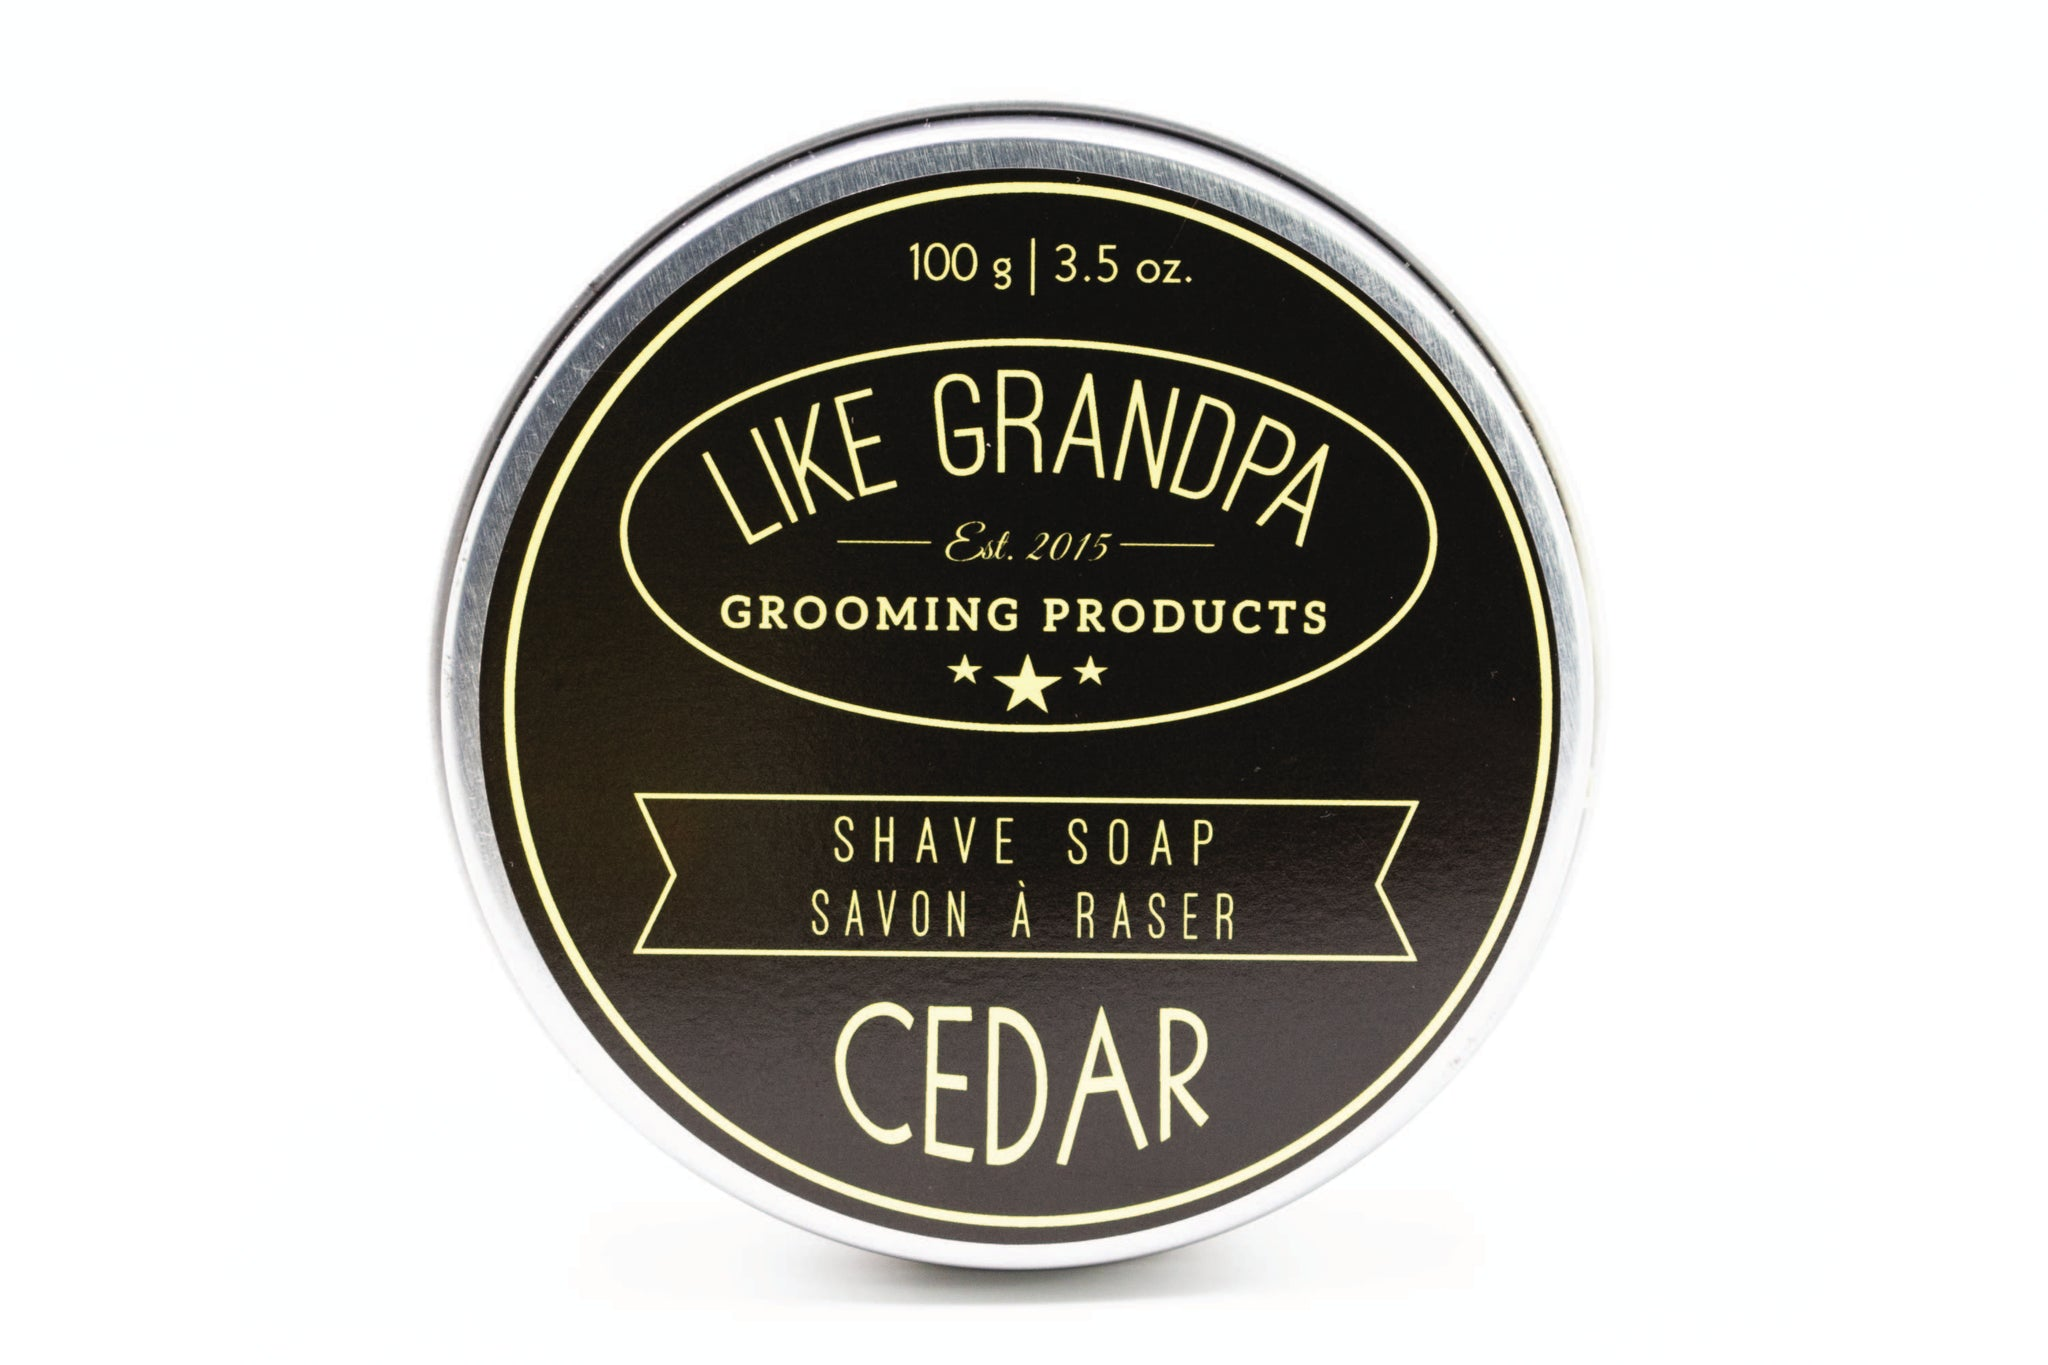 Like Grandpa Cedar Shave Soap